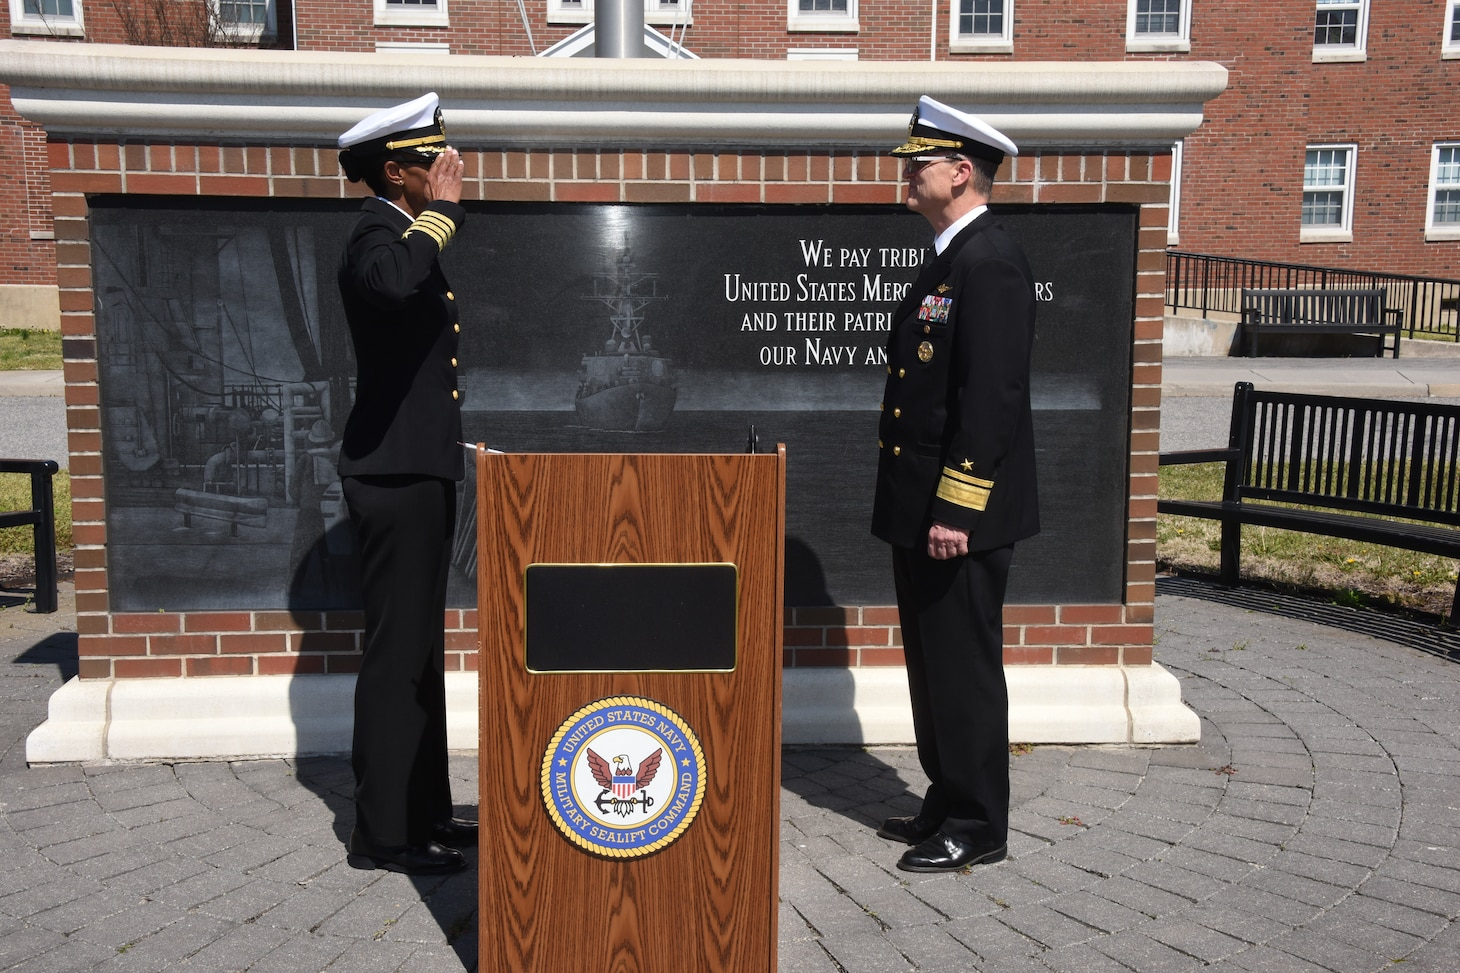 Navy Capt. Janice G. Smith salutes Rear Adm. Michael A. Wettlaufer, commander, Military Sealift Command, after she took command from Navy Capt. Hans E. Lynch as commander of Norfolk-based Military Sealift Command Atlantic during a change of command ceremony held at Naval Station Norfolk outside of MSC headquarters, March 19, 2020.